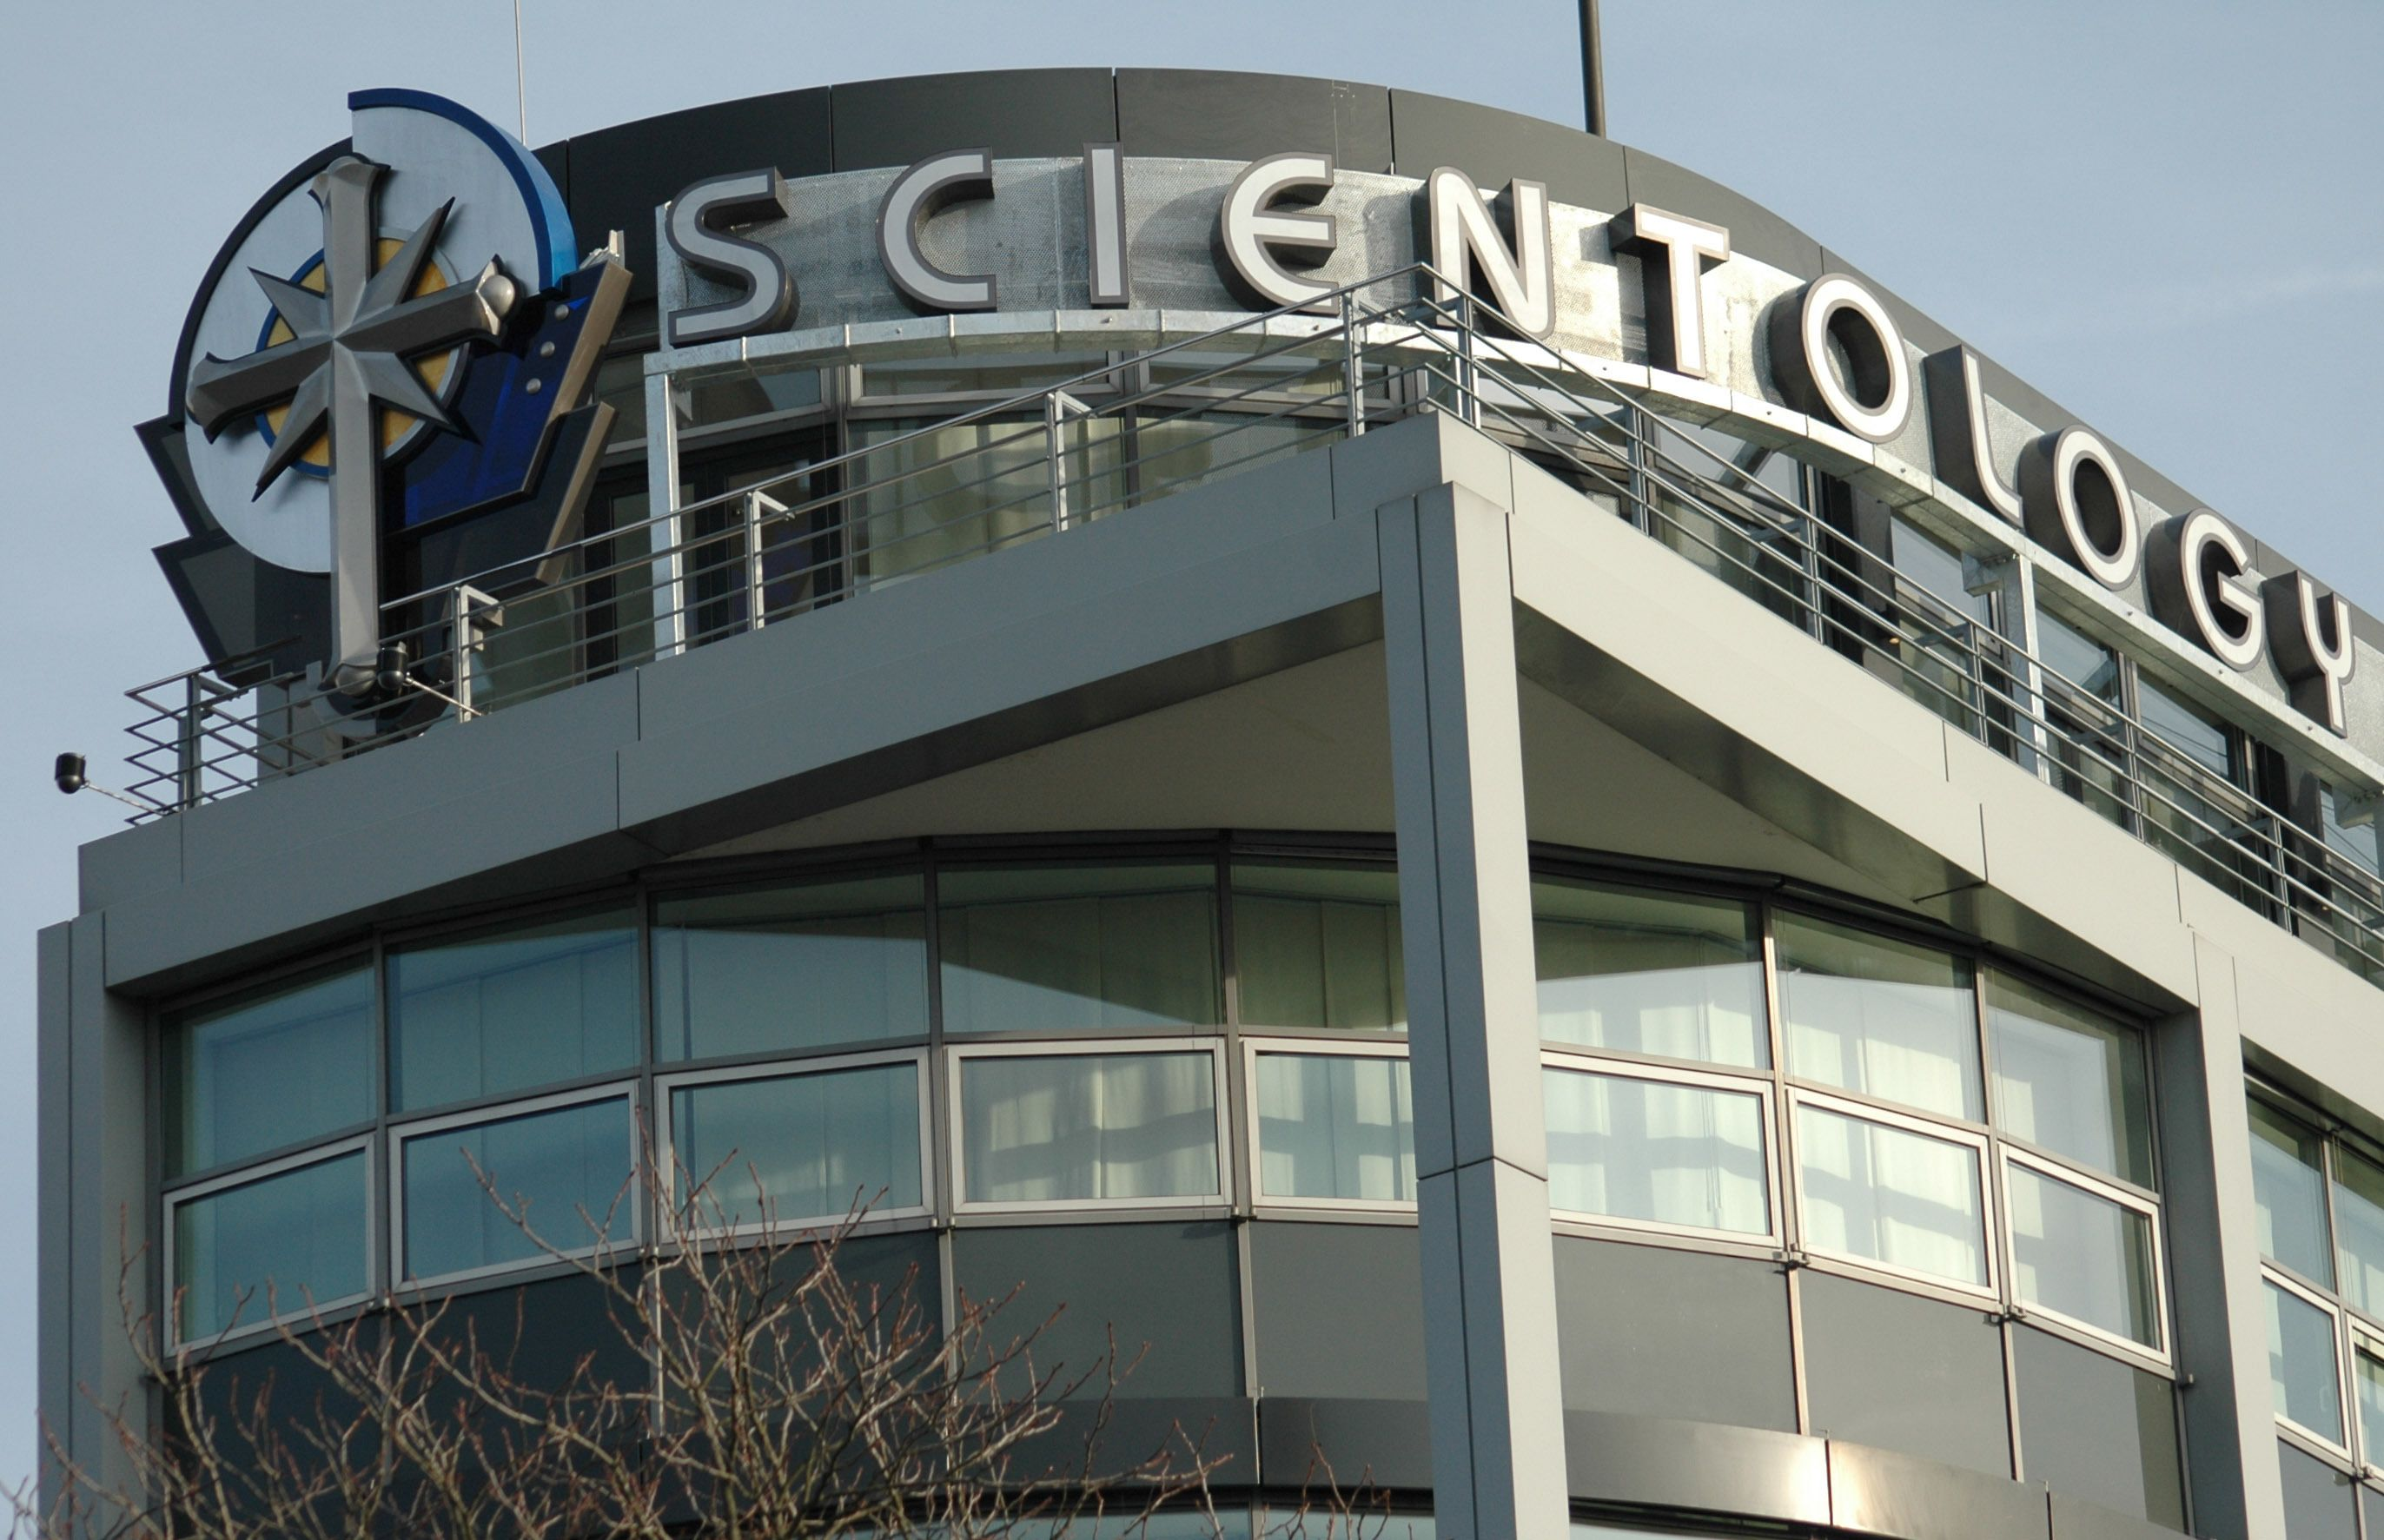 8. There is a lot of controversy surrounding Scientology's status as a religion.